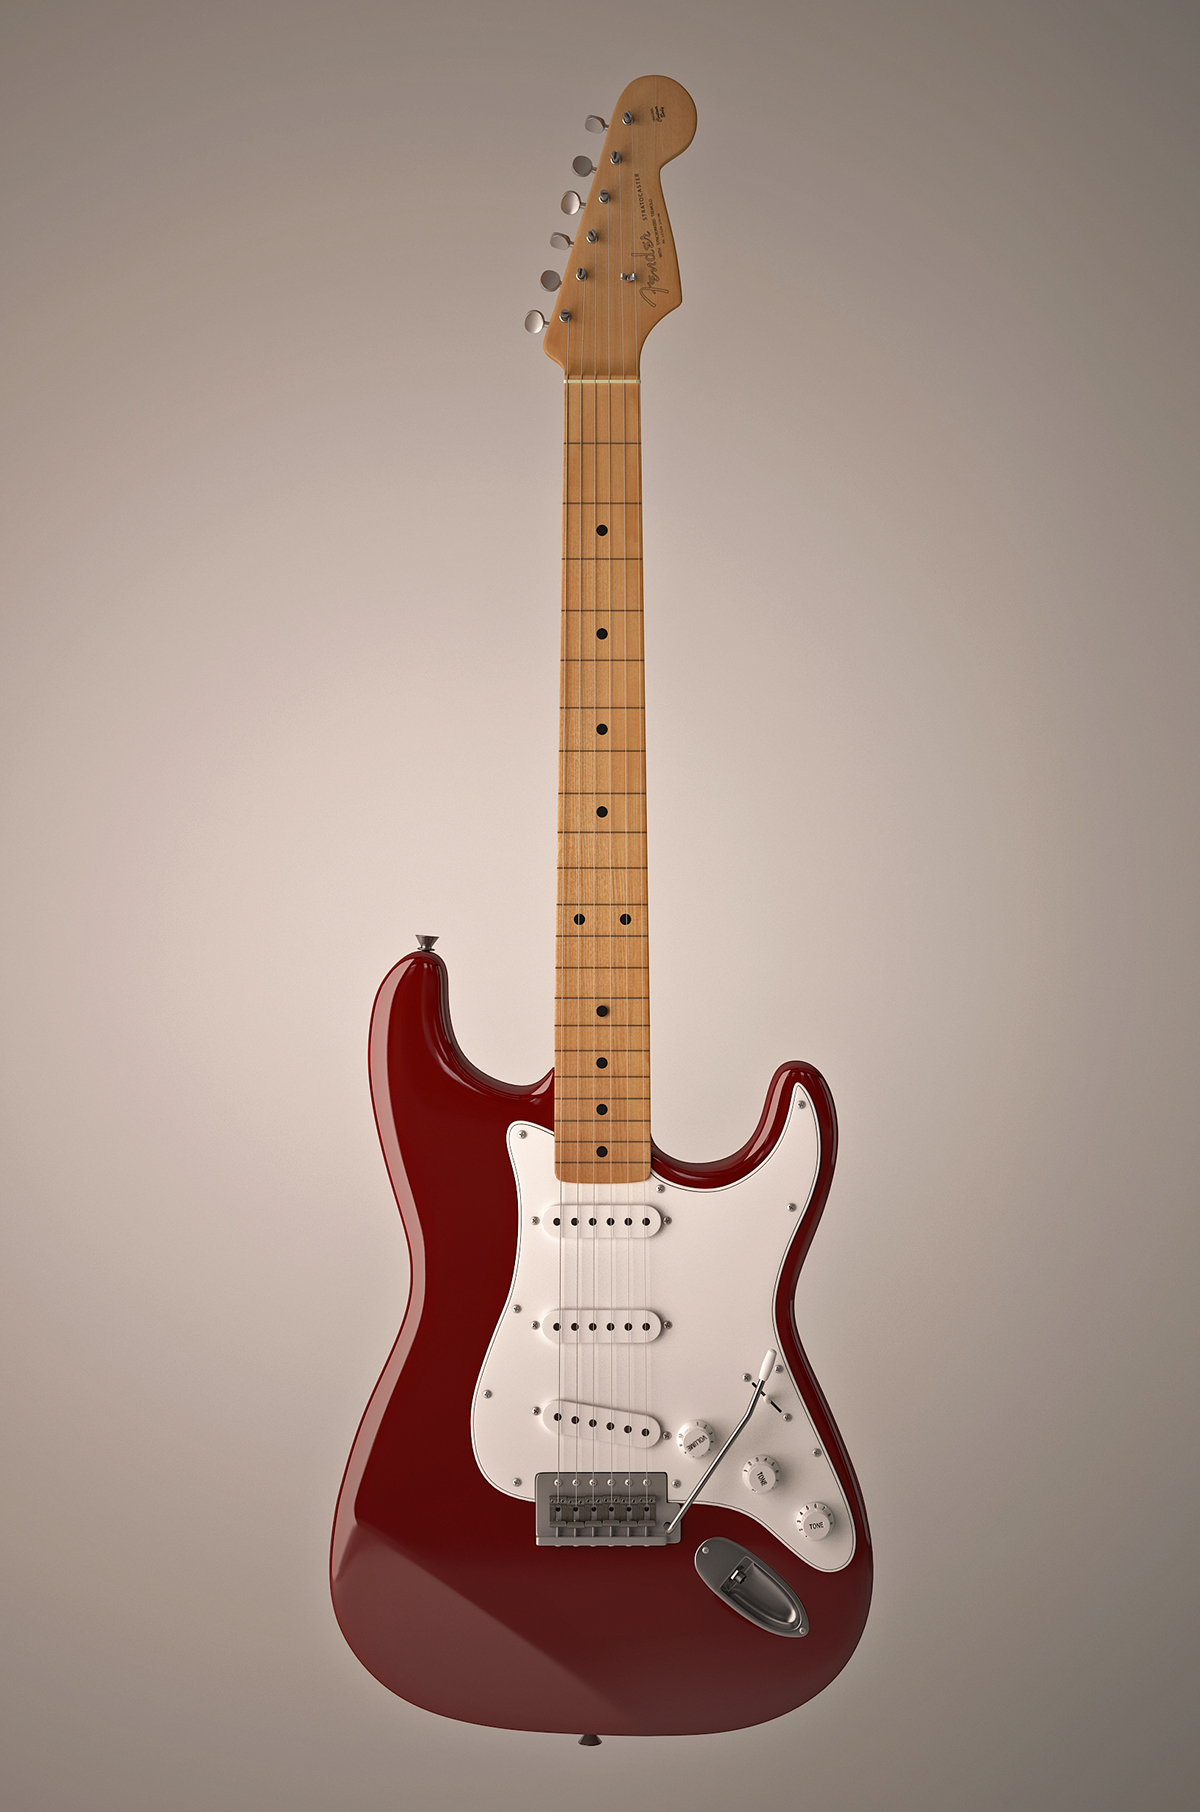 Fender Stratocaster FREE 3D model download on Behance